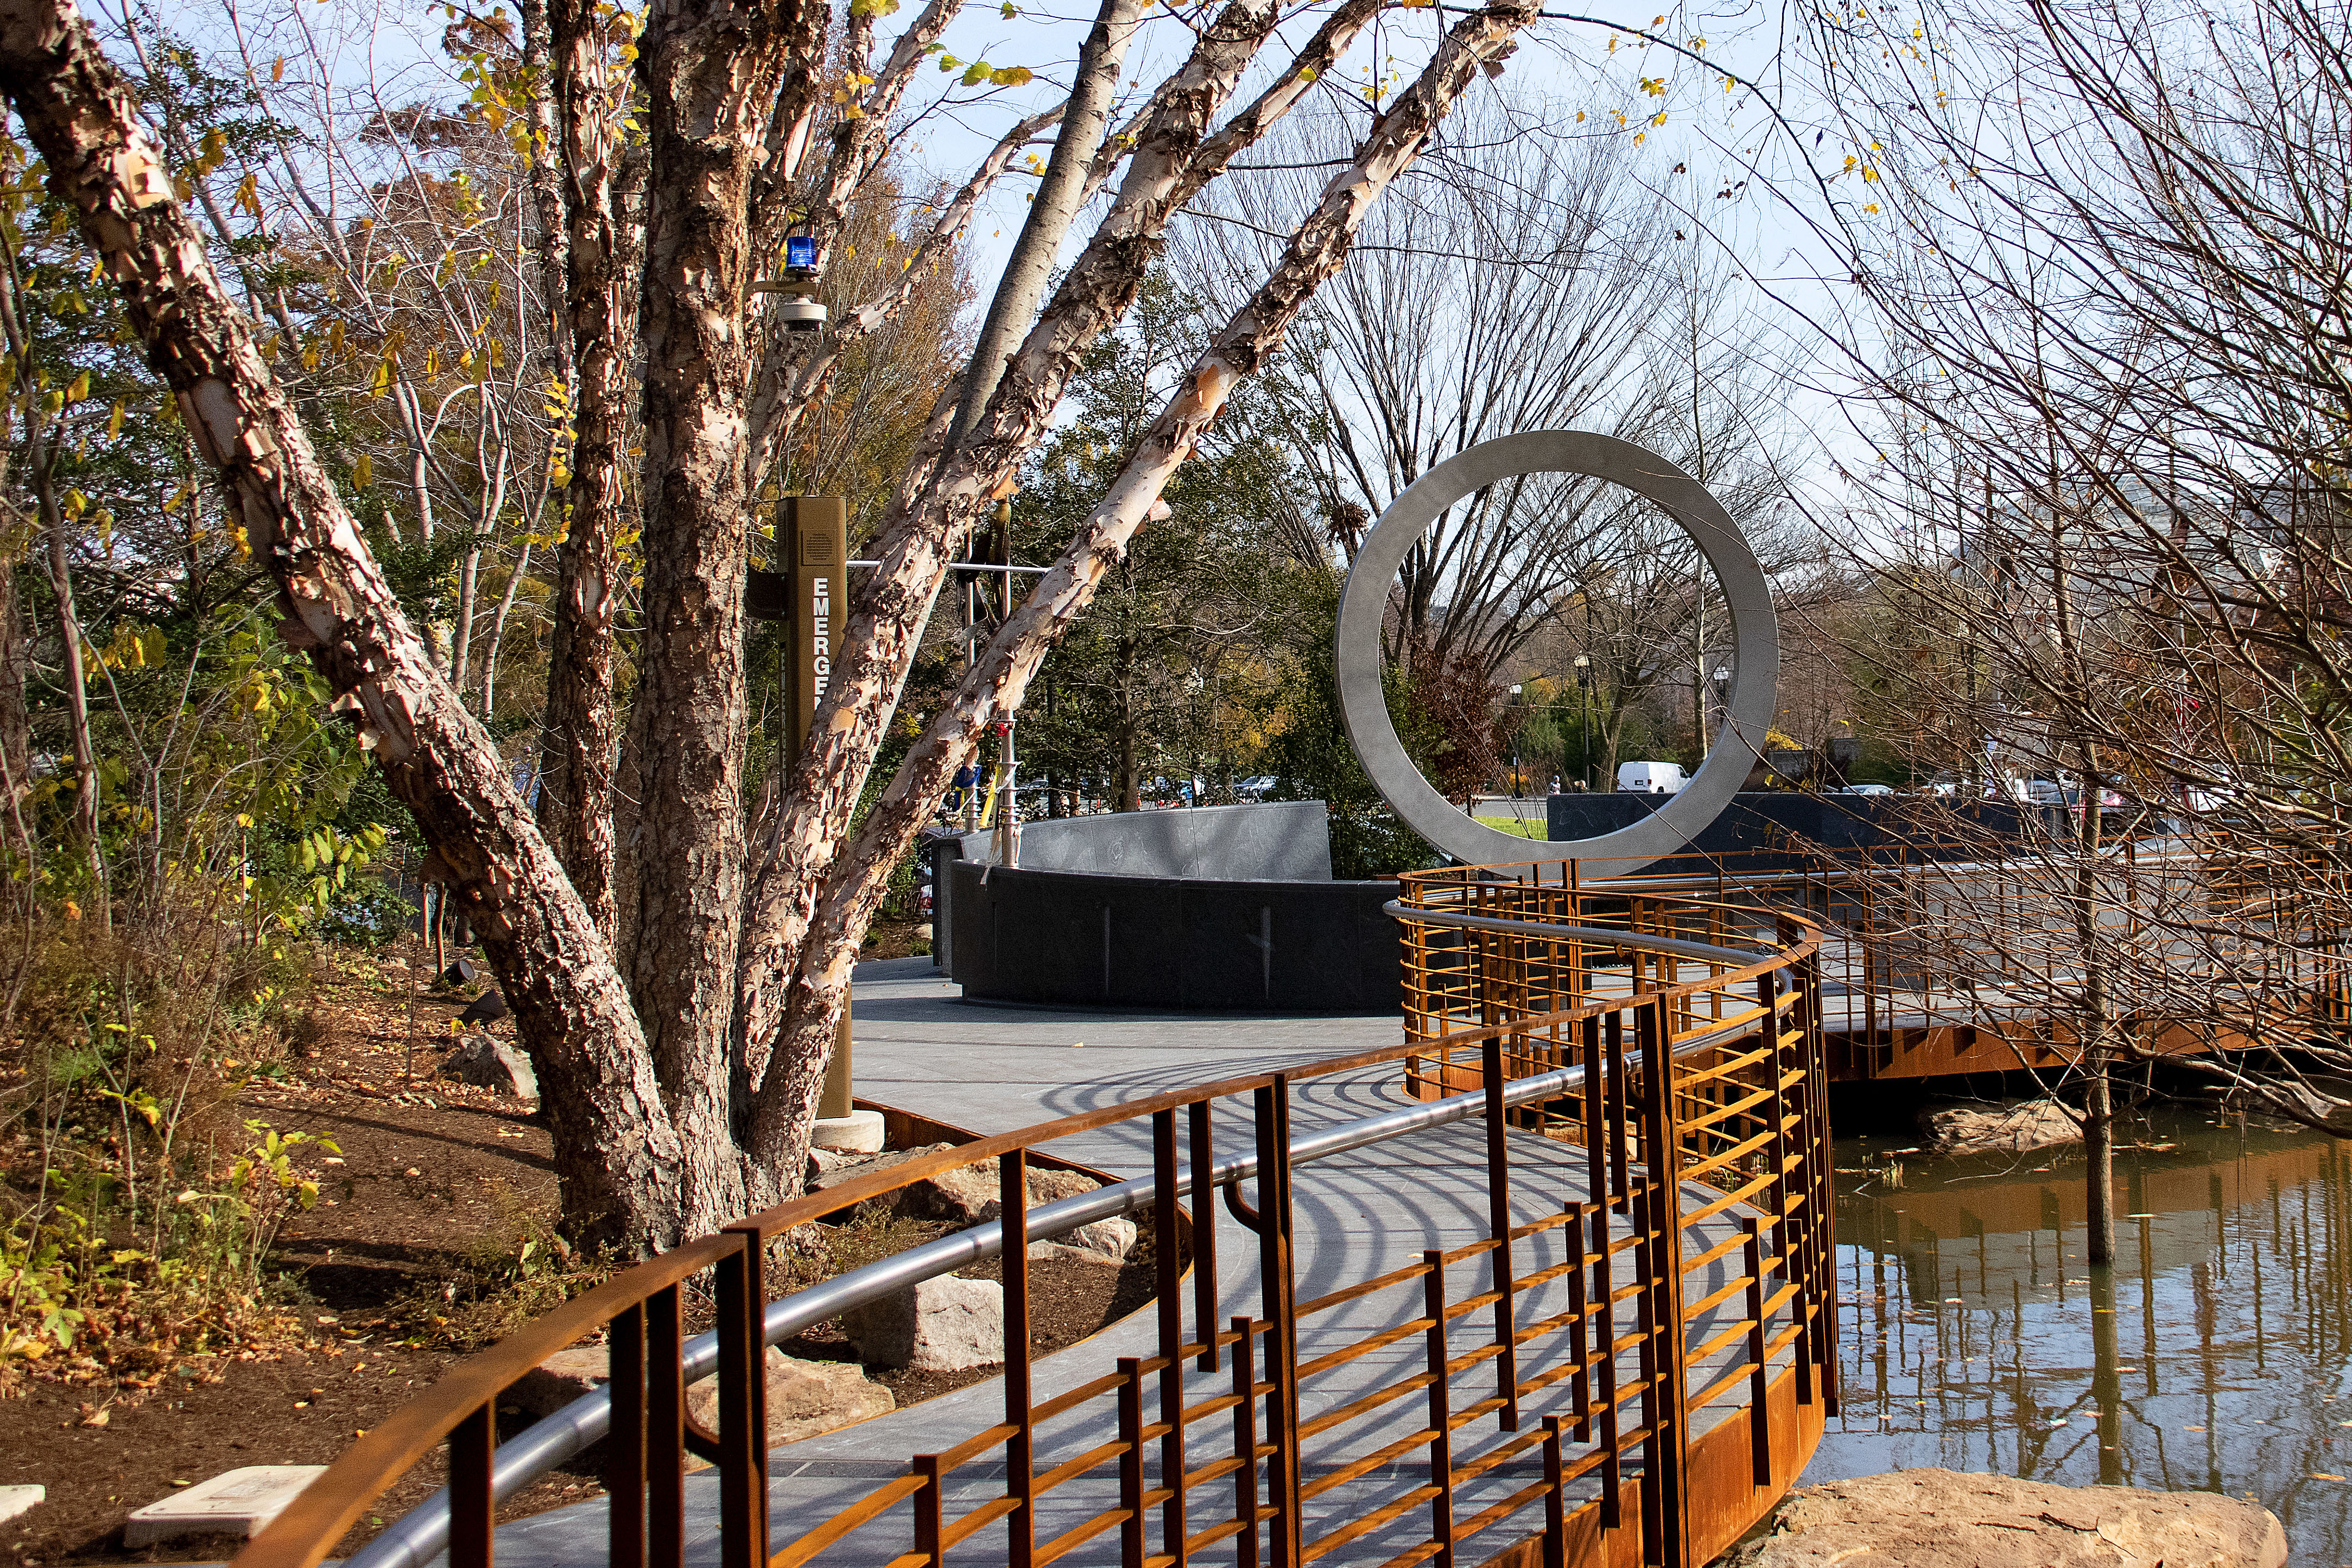 Caption: The National Native American Veterans Memorial in Washington, D.C. opened in November. The monument incorporates water for sacred ceremonies, benches, and lances where visitors can tie cloths for prayers and healing., Credit: Ron Cogswell / Flickr